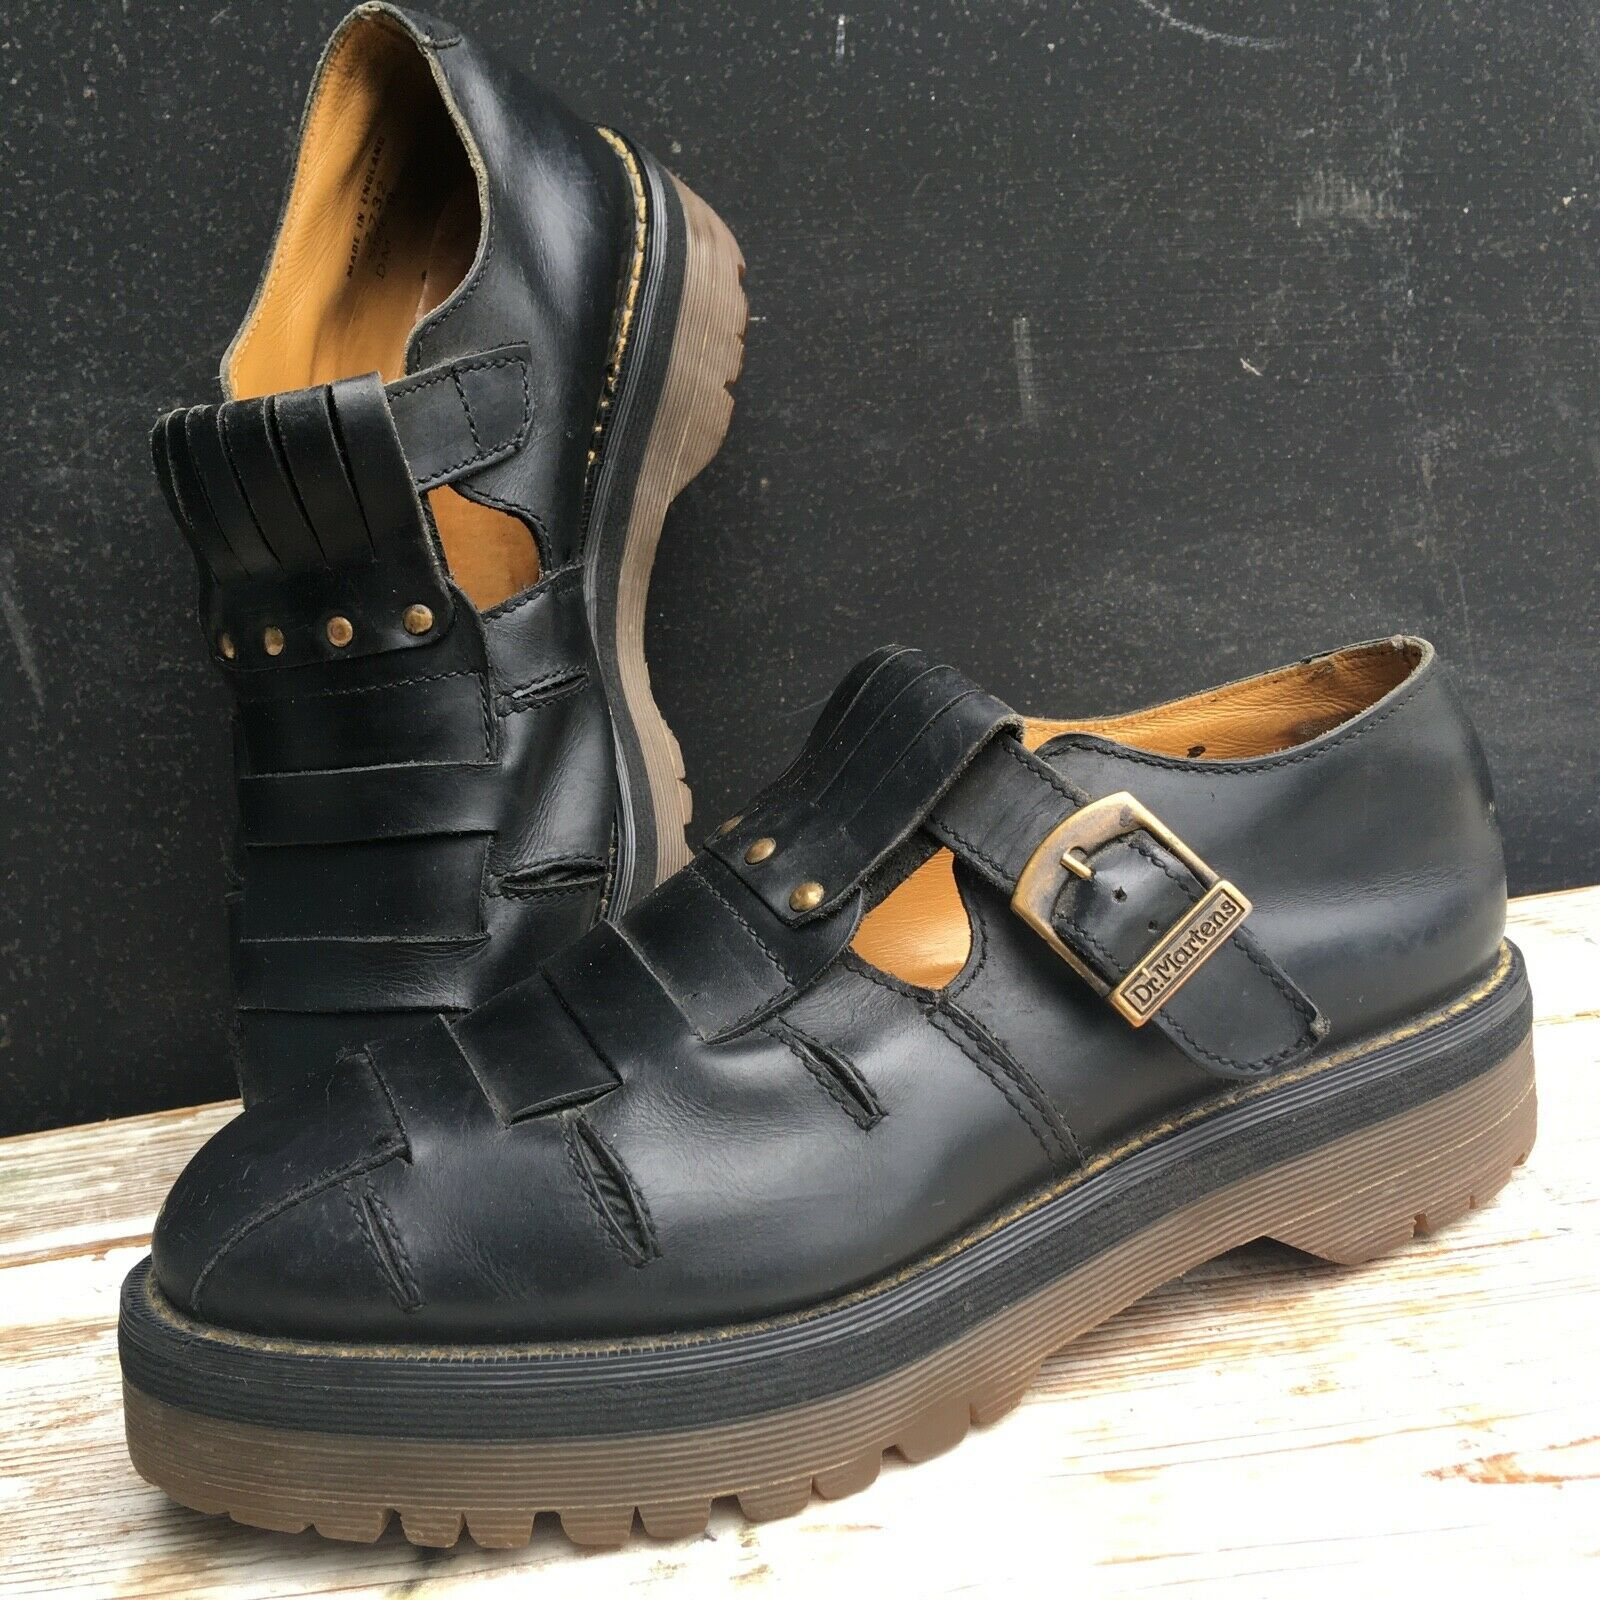 dr martens extra thick sole